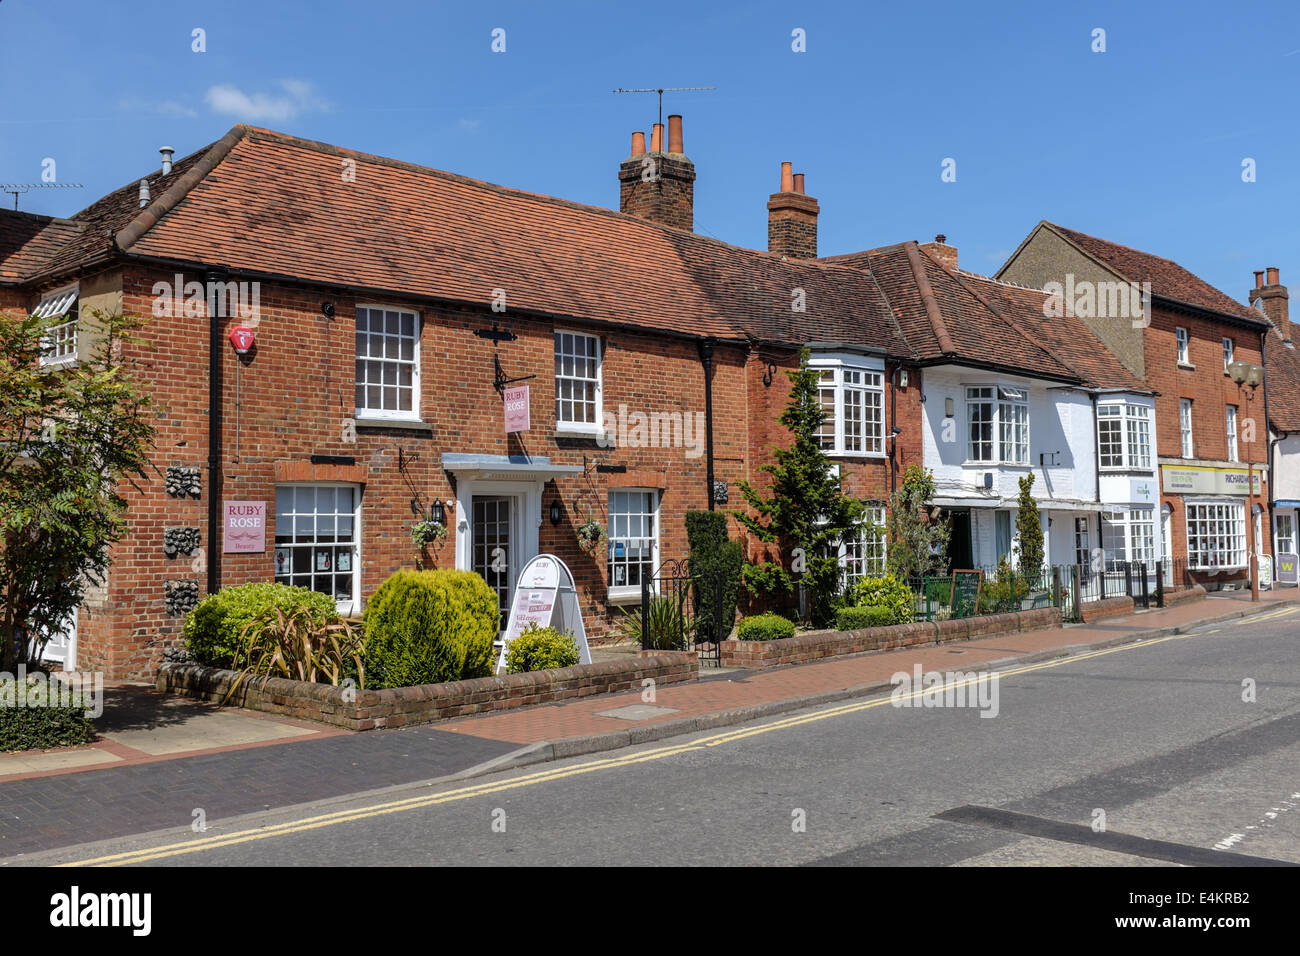 a sample of shops Rose Street Wokingham Berkshire Stock Photo